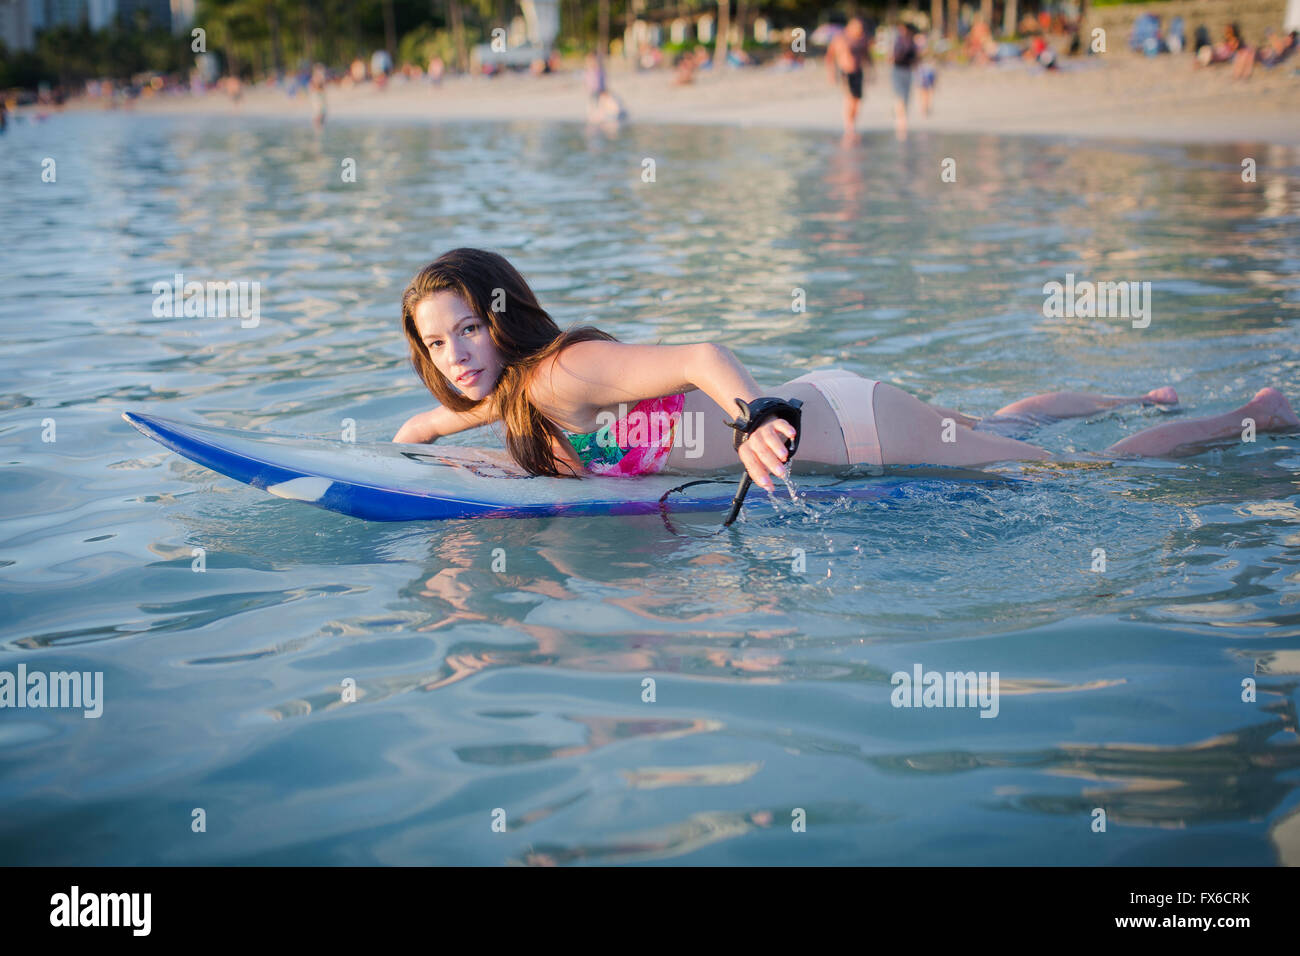 Mixed Race amputee natation with surfboard Banque D'Images